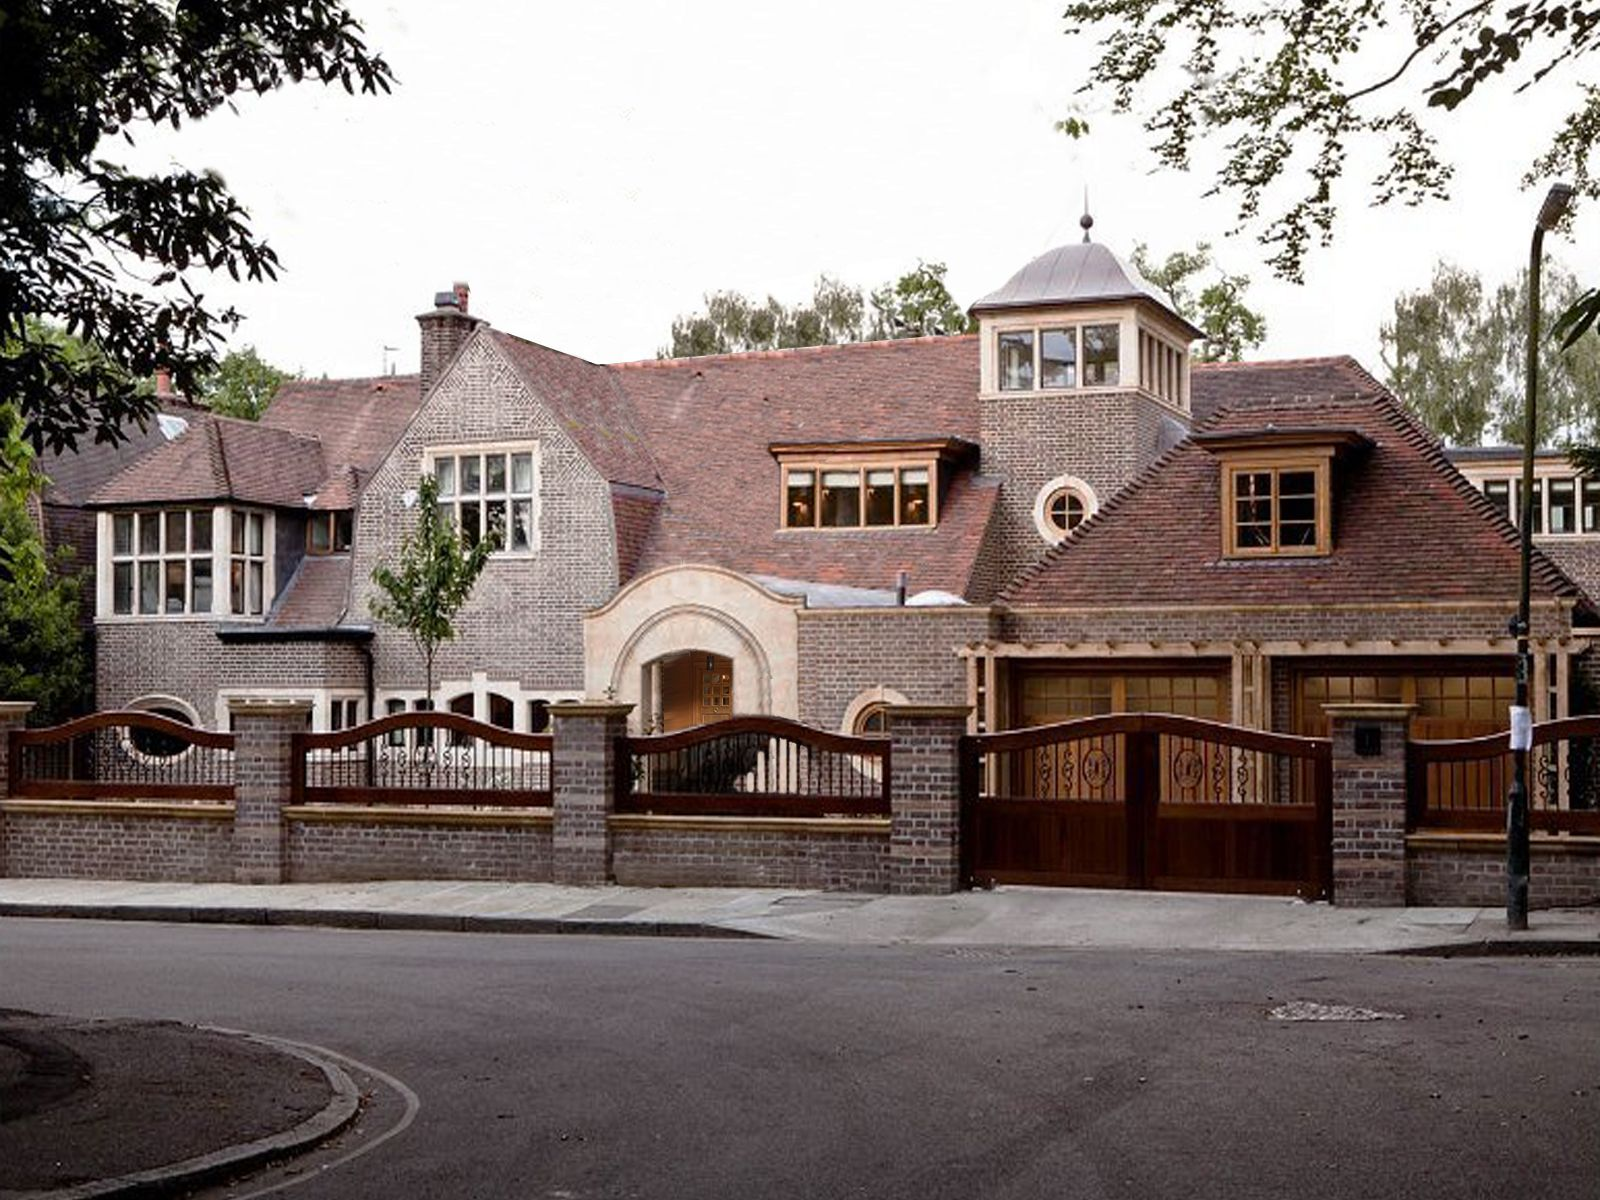 Extension mobili ~ Extension of an arts and crafts house in south west london